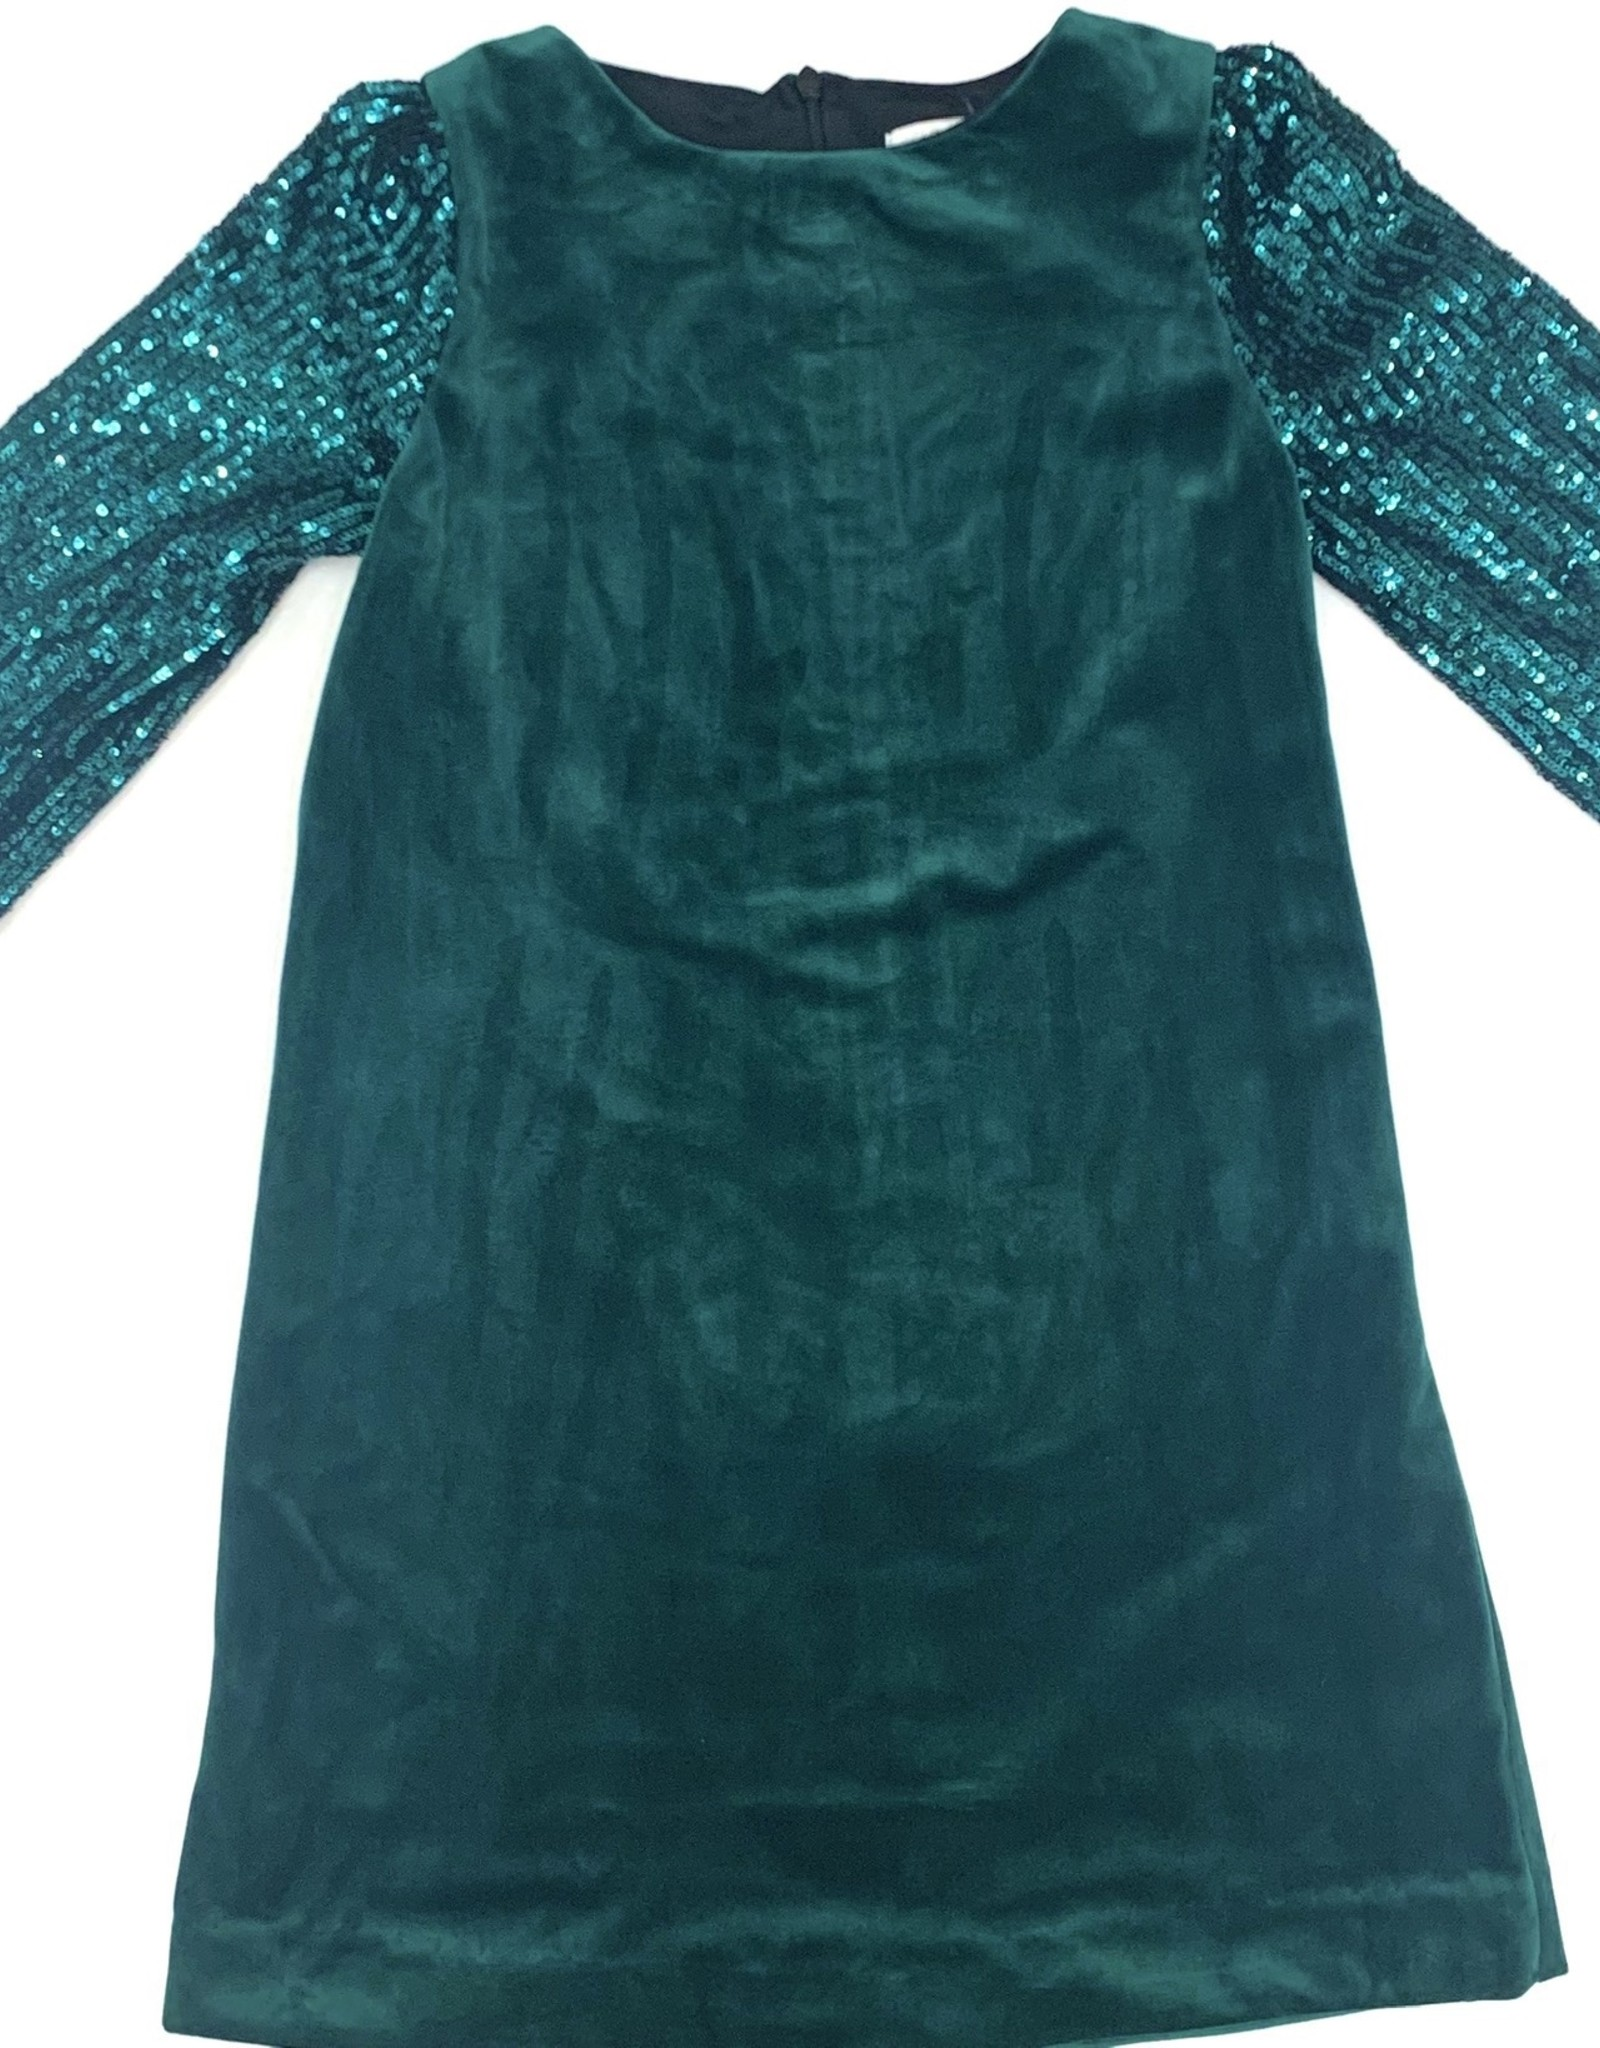 Sophie & Lucas Green Velvet Dress Wtih Sequins Sleeves